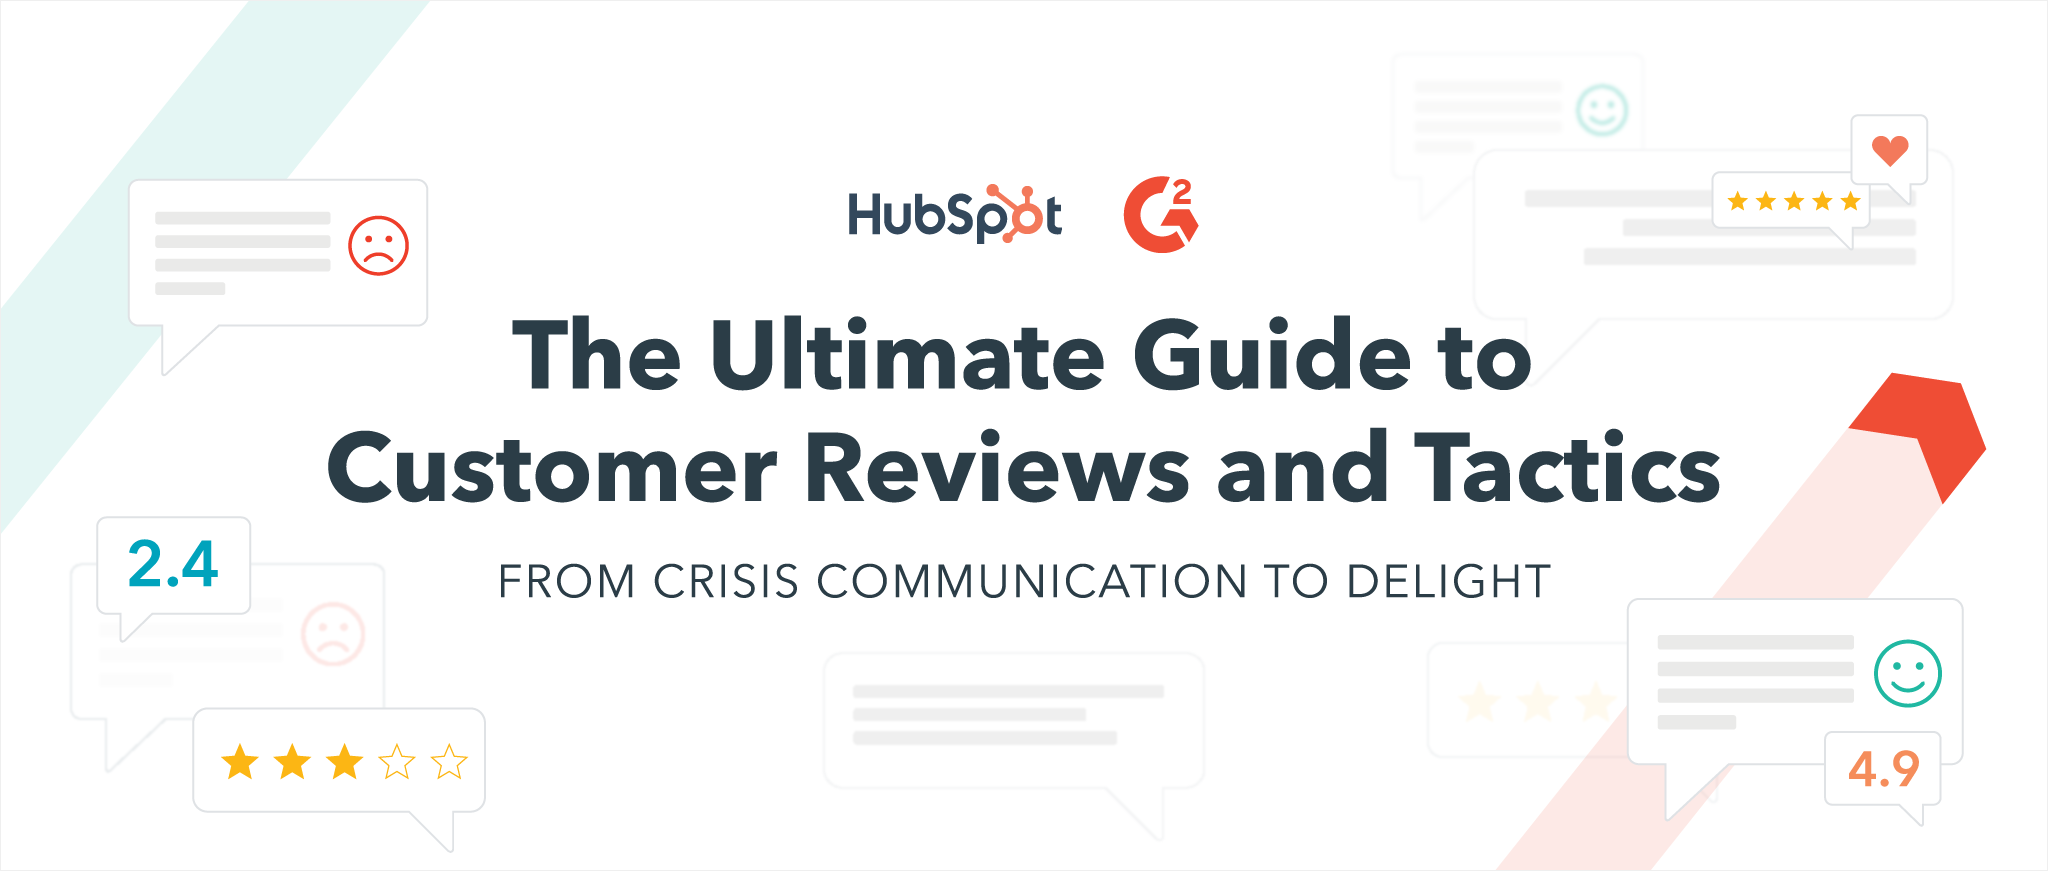 The Ultimate Guide to Customer Reviews and Tactics